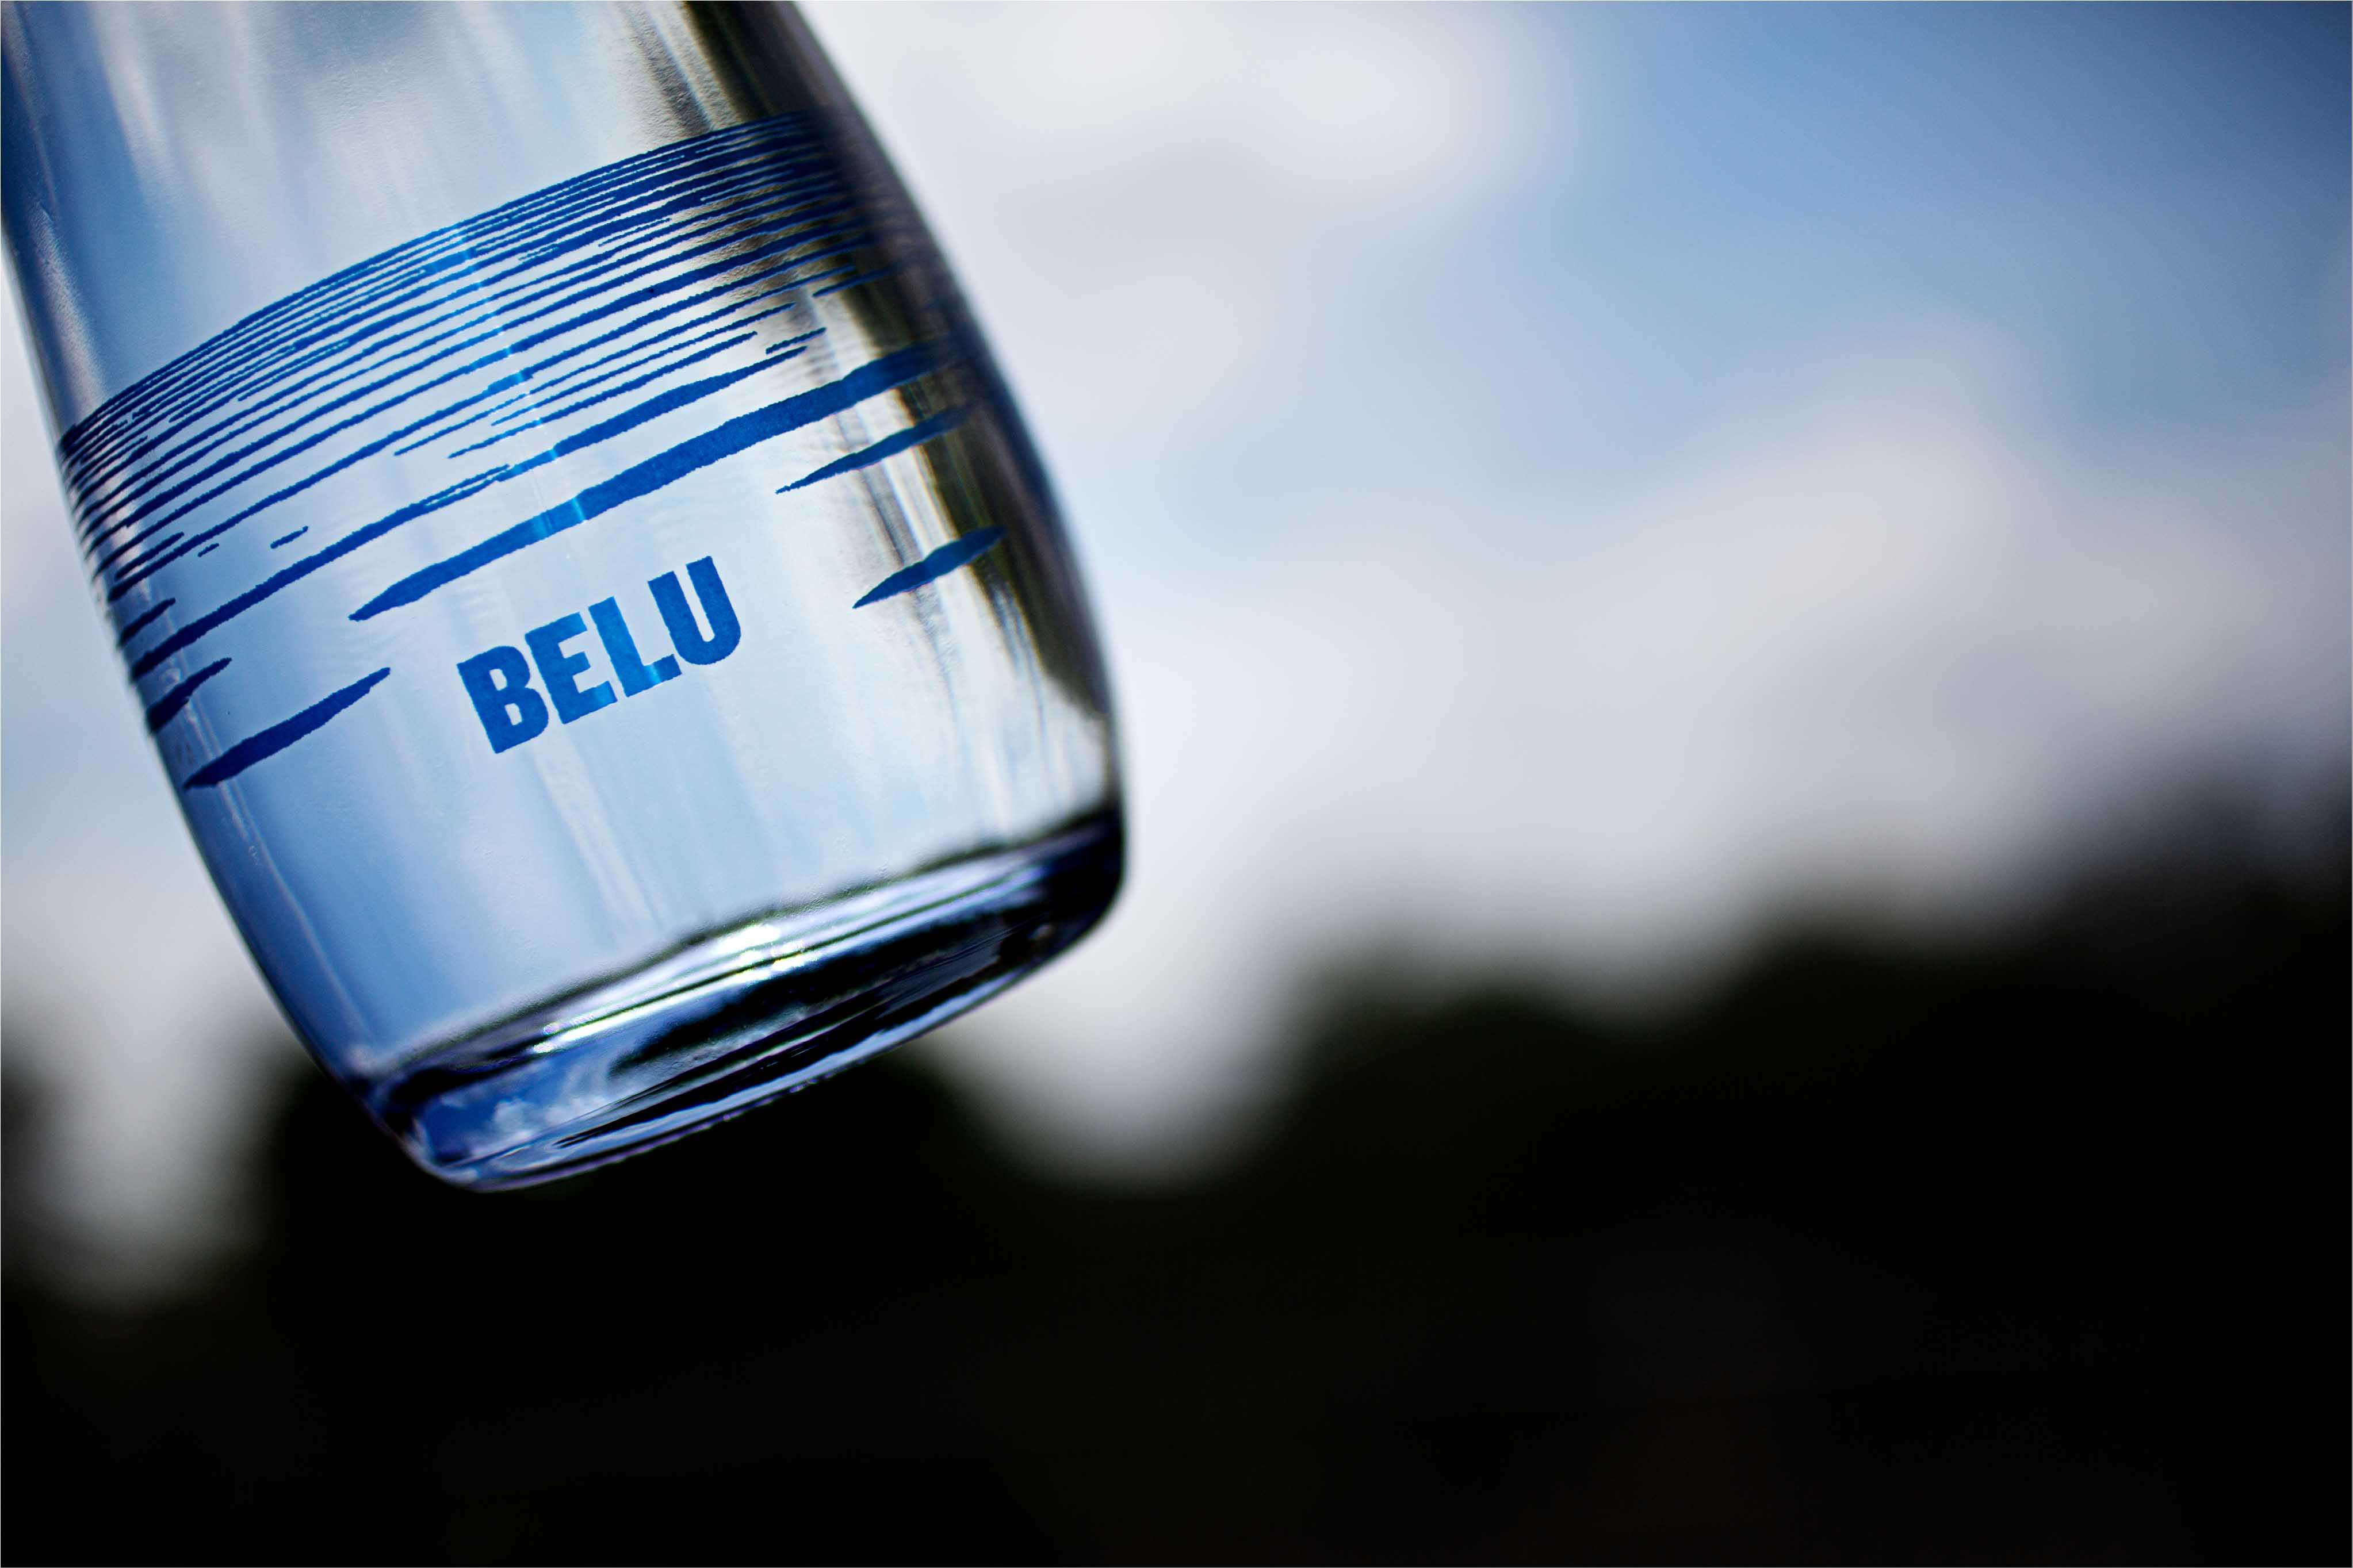 Belu Filter still Bottle